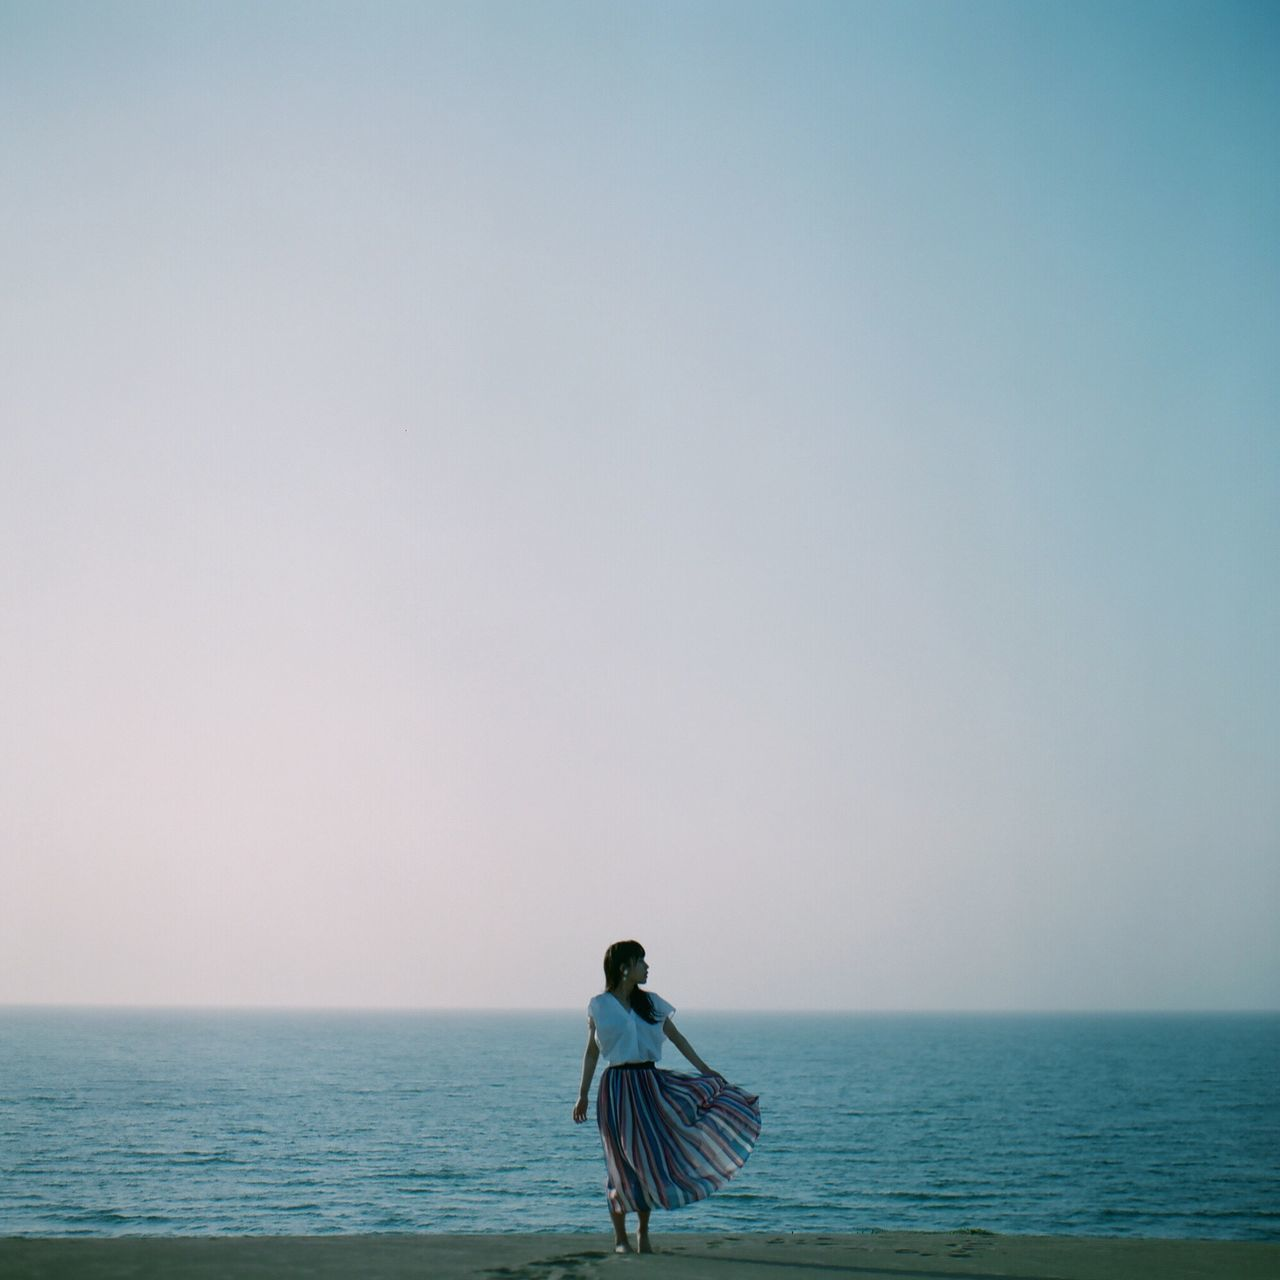 sea, horizon over water, water, clear sky, tranquil scene, scenics, copy space, beauty in nature, nature, tranquility, one person, real people, sky, beach, standing, outdoors, day, lifestyles, young adult, young women, people